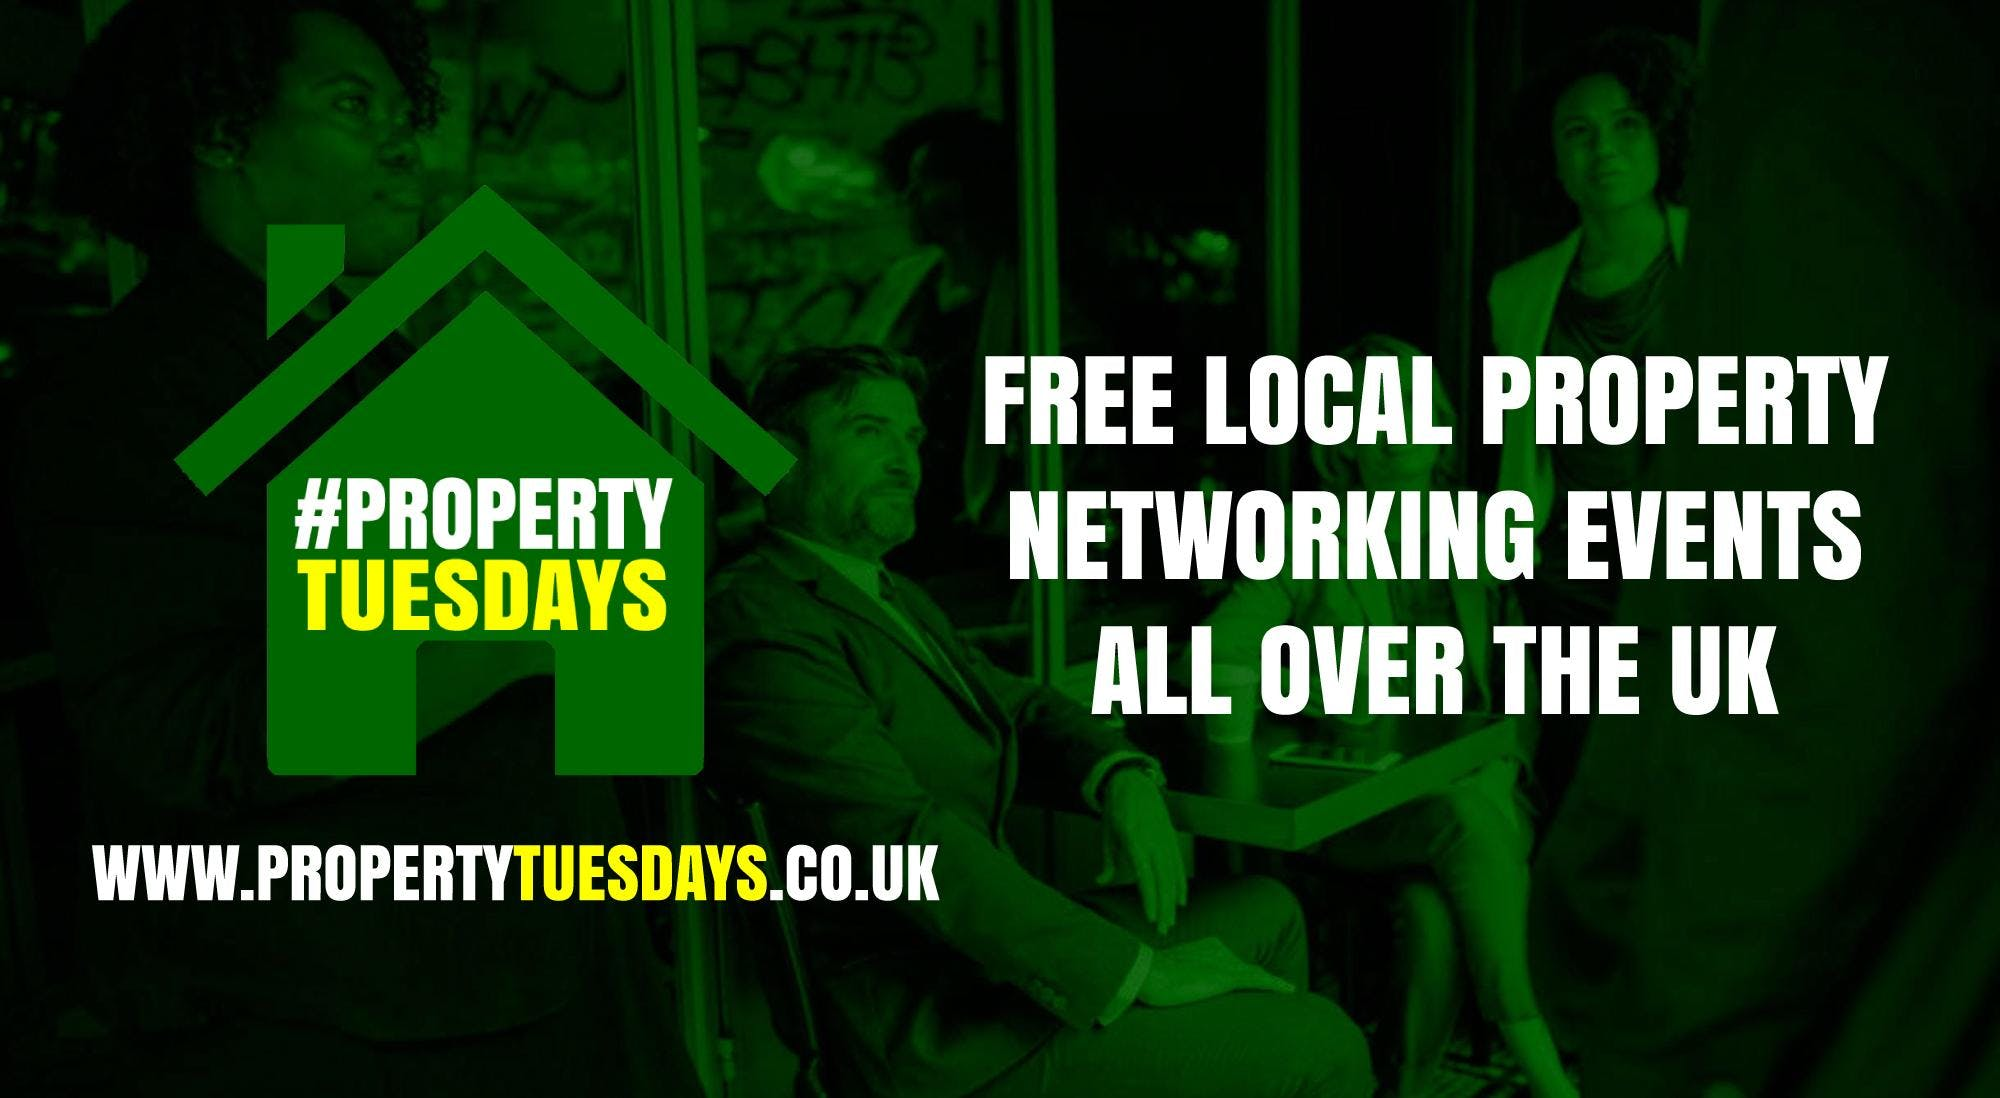 Property Tuesdays! Free property networking event in St Helens